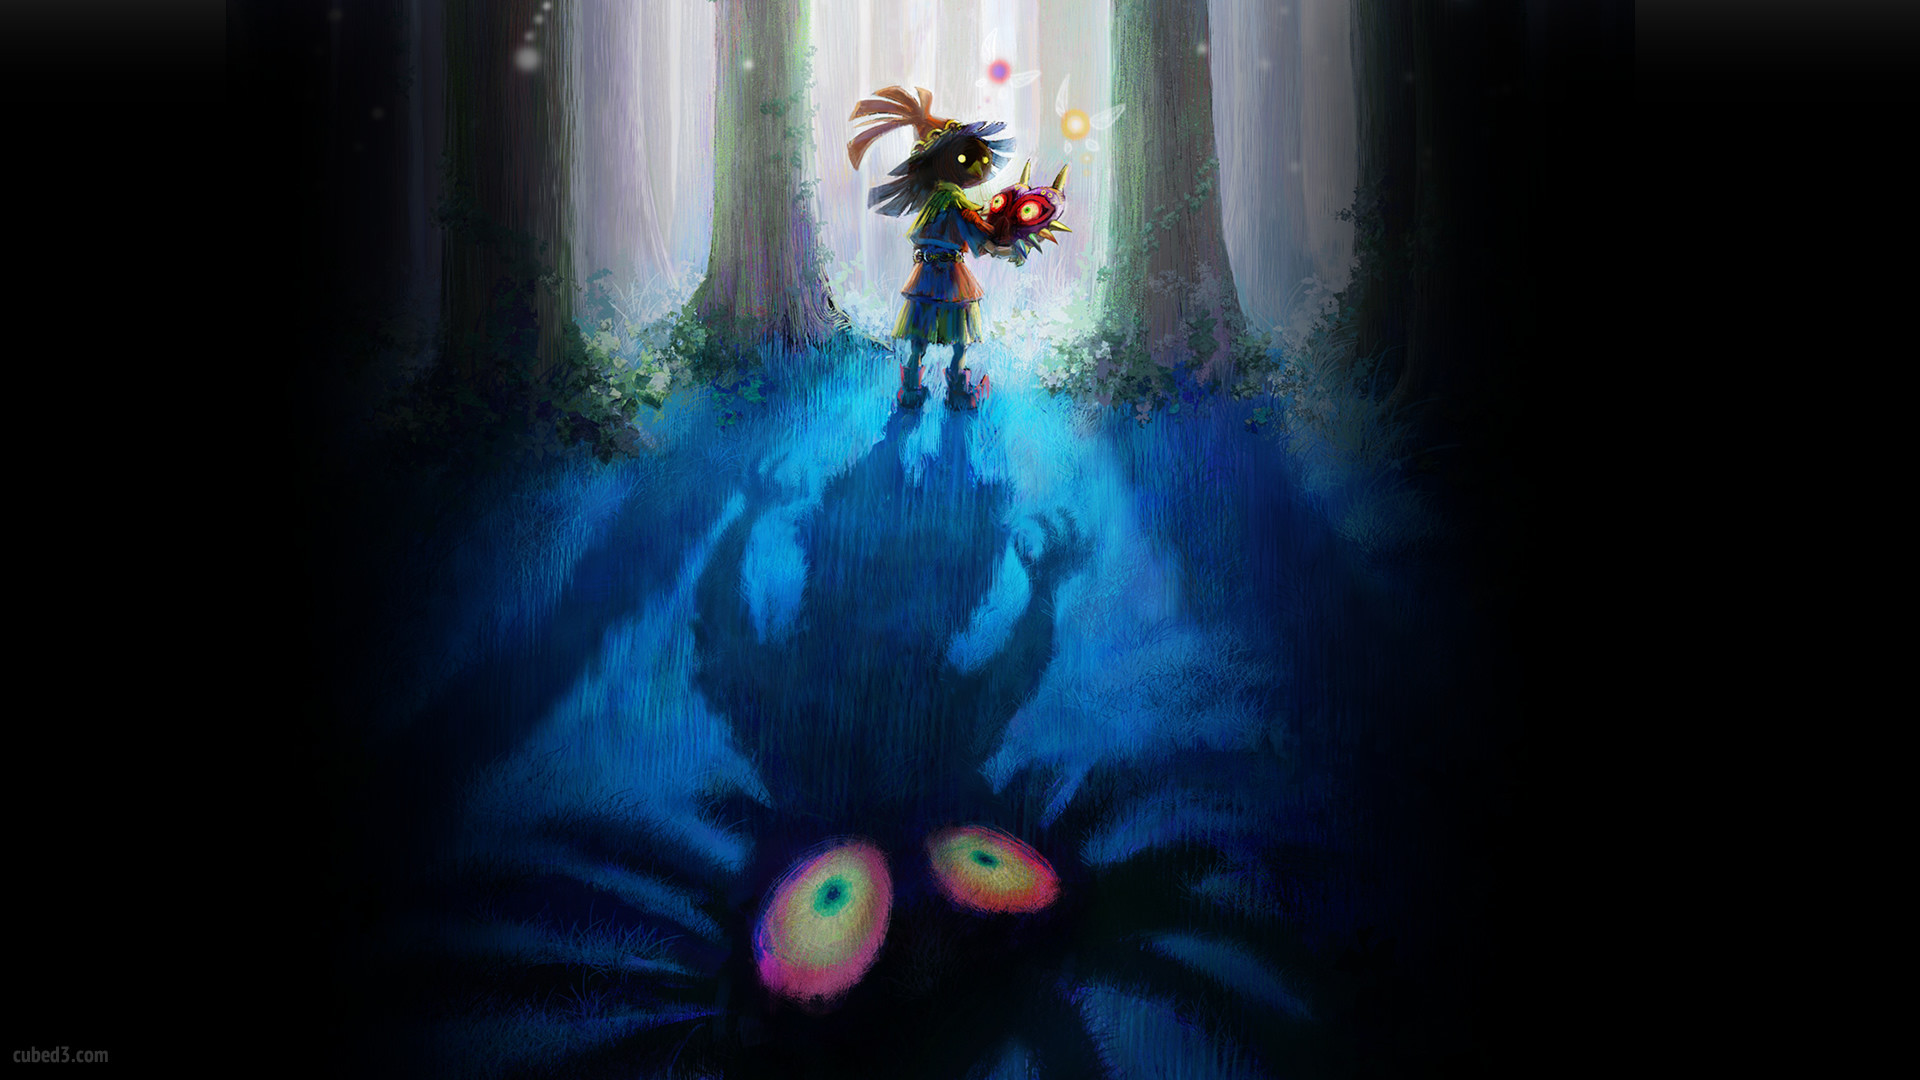 Majora S Mask Desktop Background: Zelda Majora's Mask 3DS Wallpaper